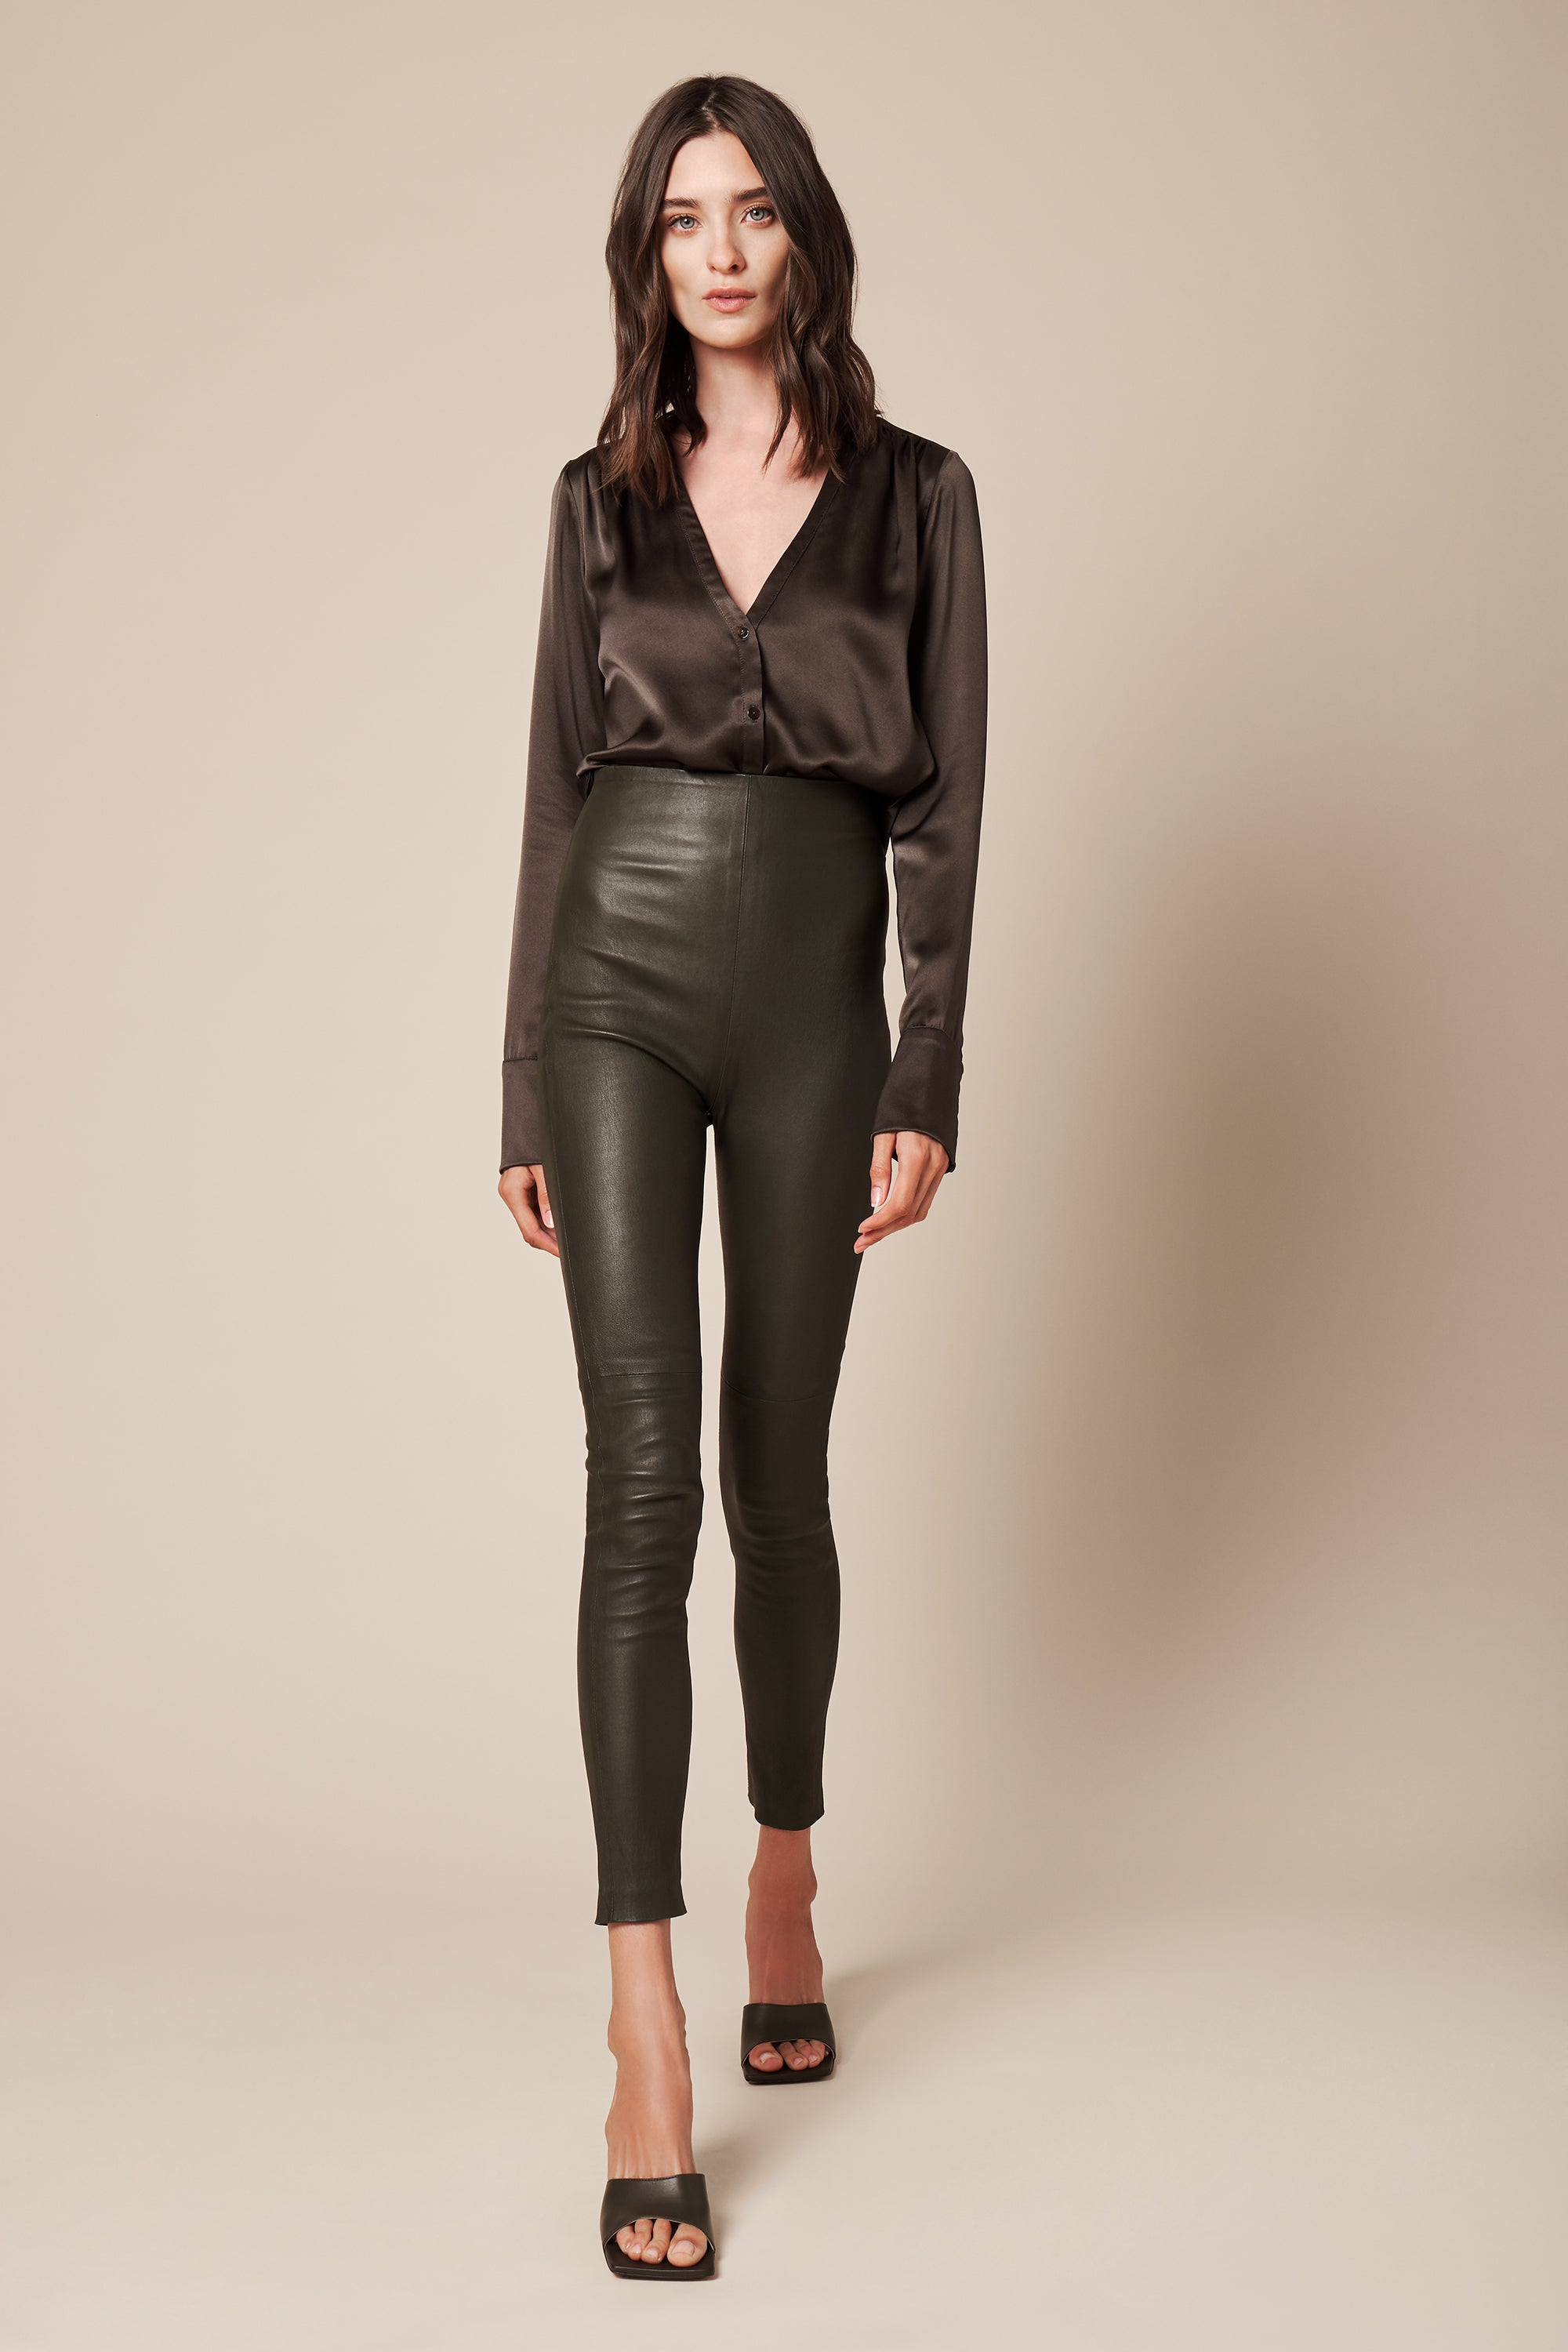 JESSICA LEATHER PANT | OLIVE